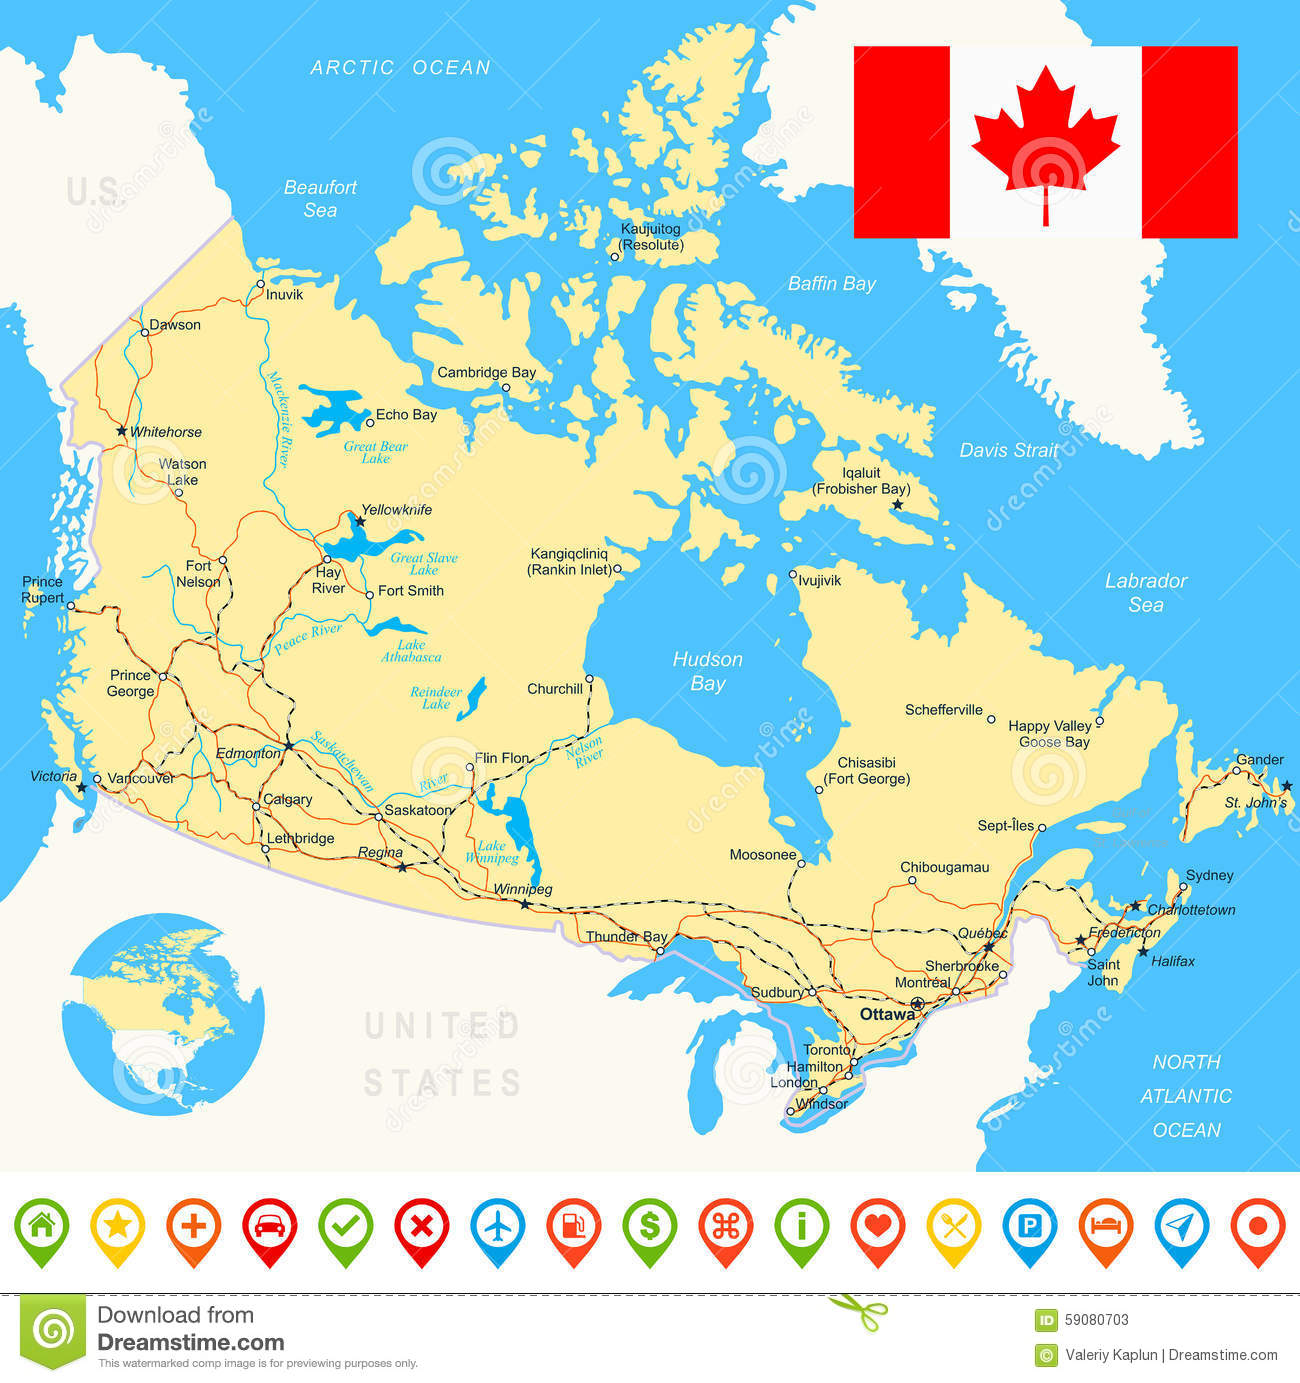 Map Of Canada Roads.Canada Map Flag Navigation Icons Roads Rivers Illustration